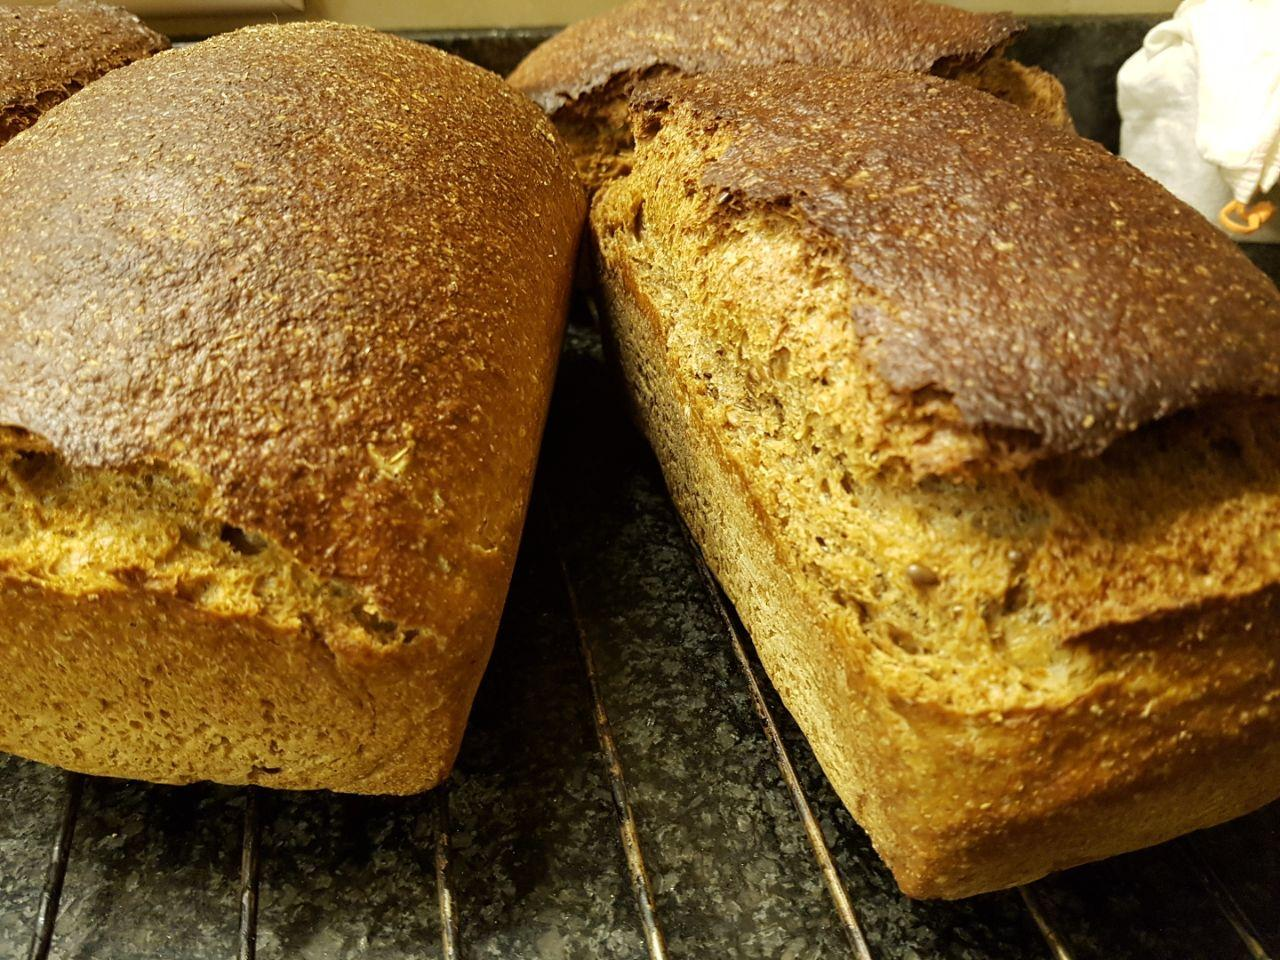 whole wheat rye and linen seeds